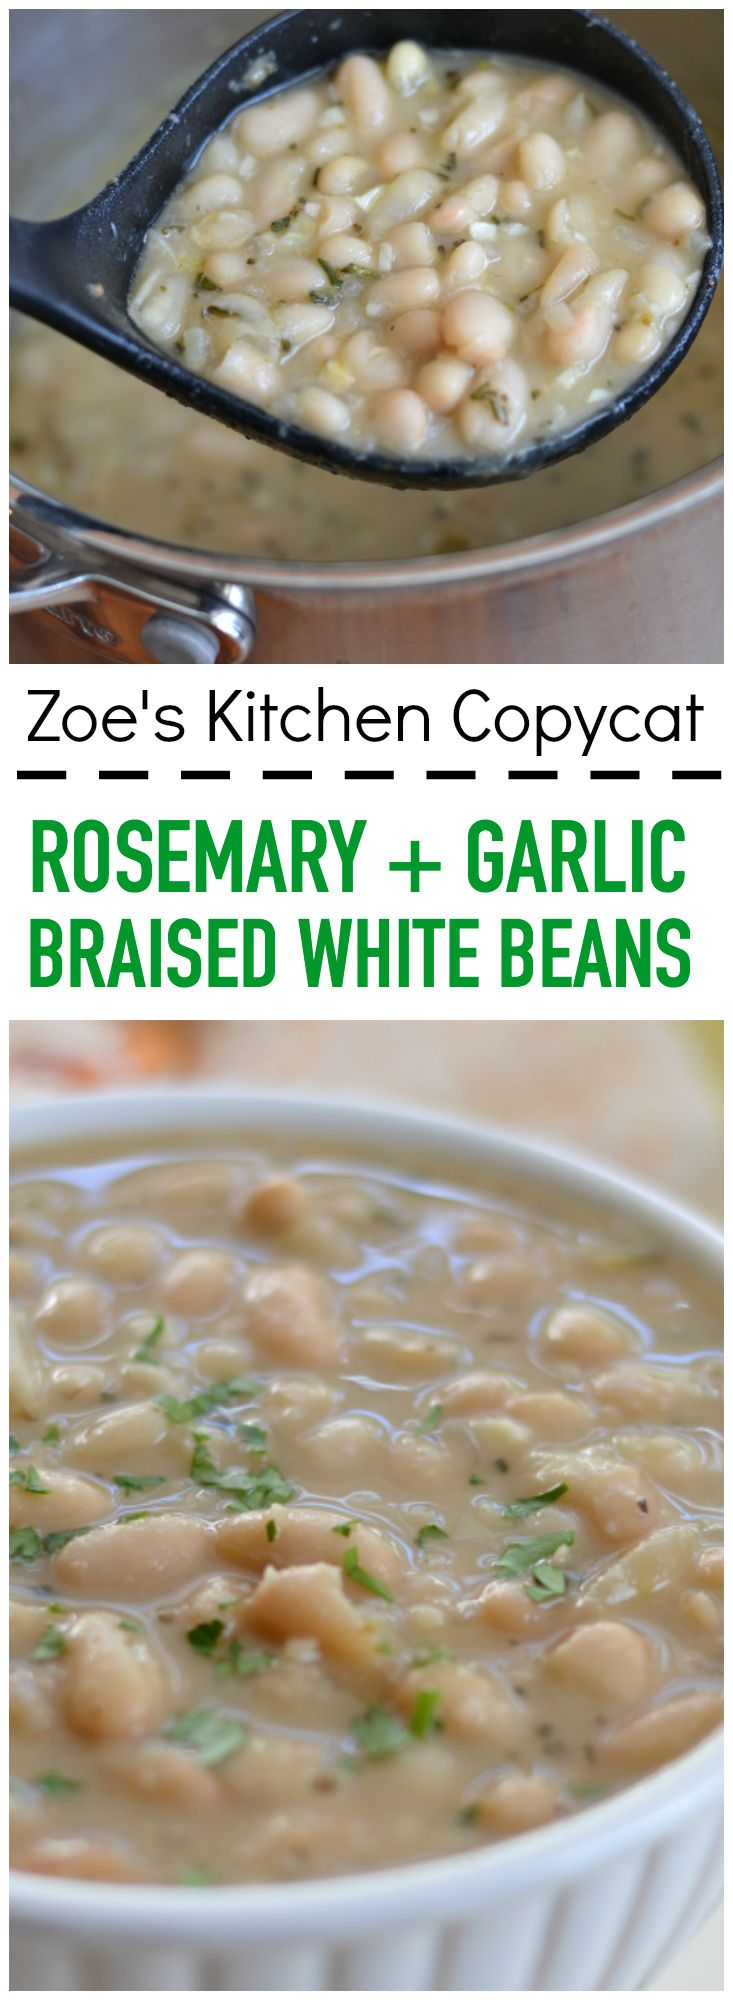 These rosemary and garlic braised white beans will become your new favorite easy side dish.